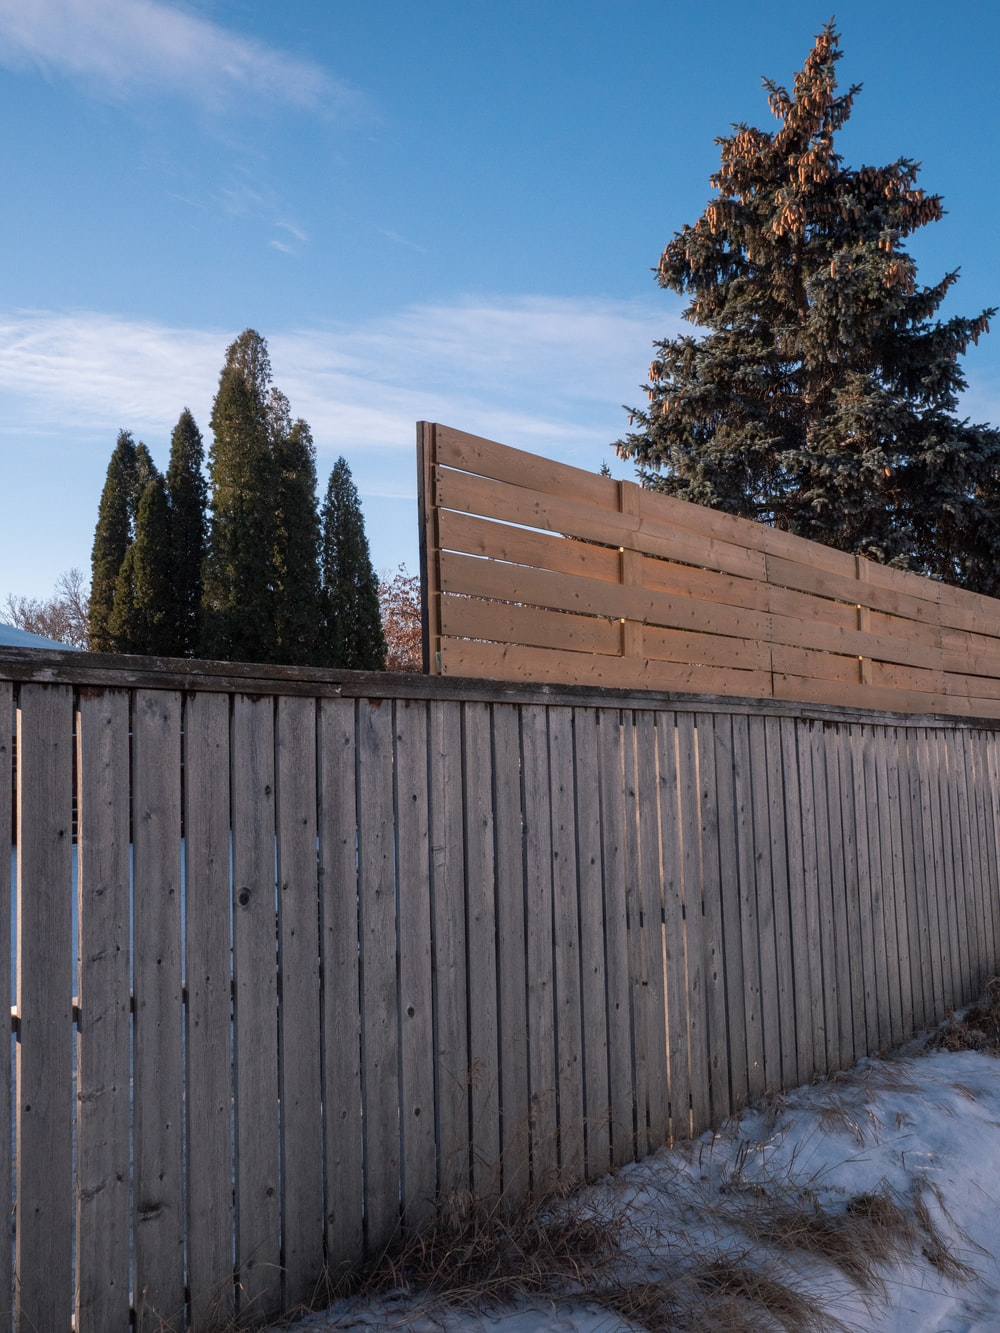 brown wooden fence near green trees under blue sky during daytime